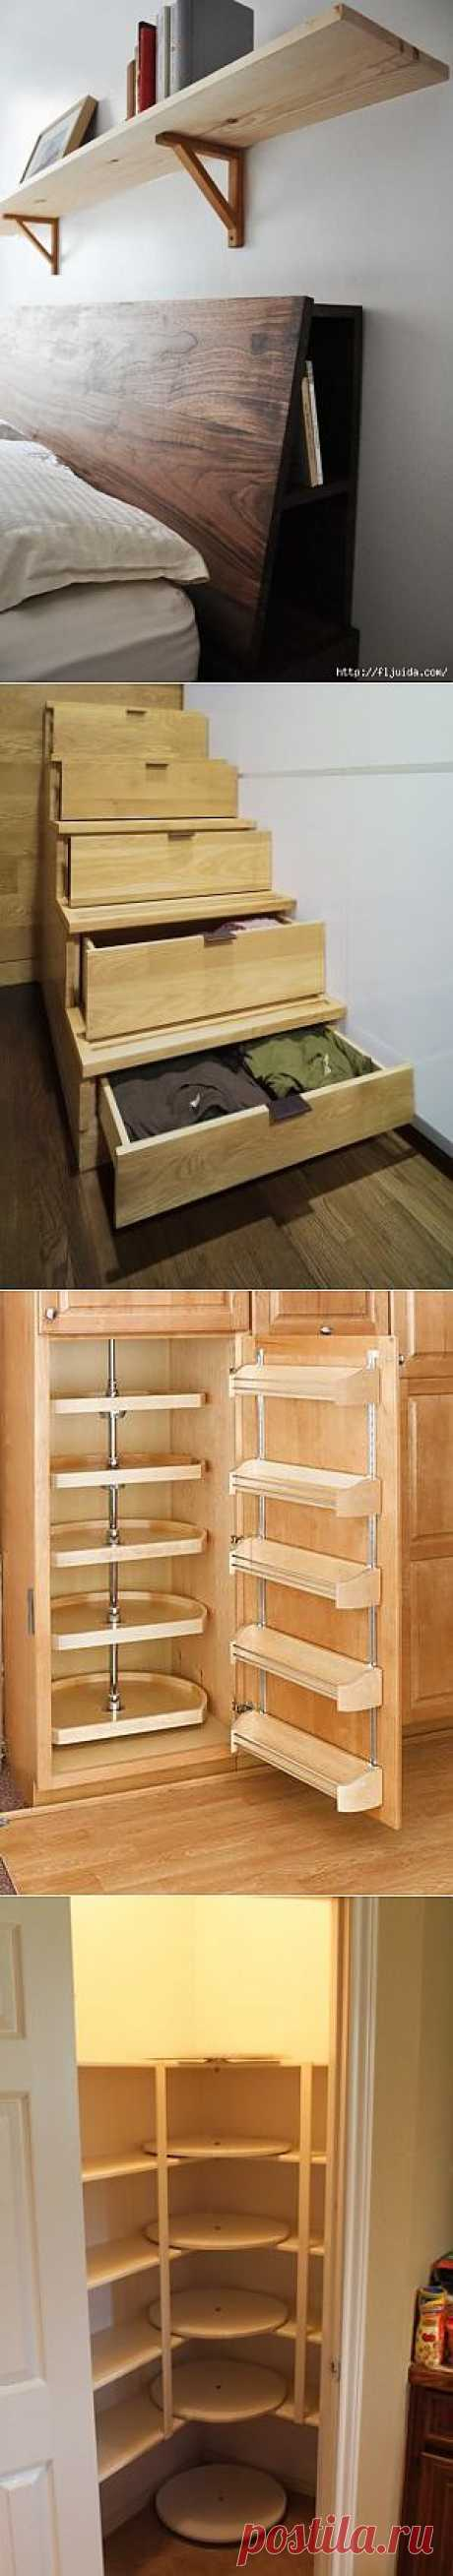 Ideas of convenient places for storage in an interior.